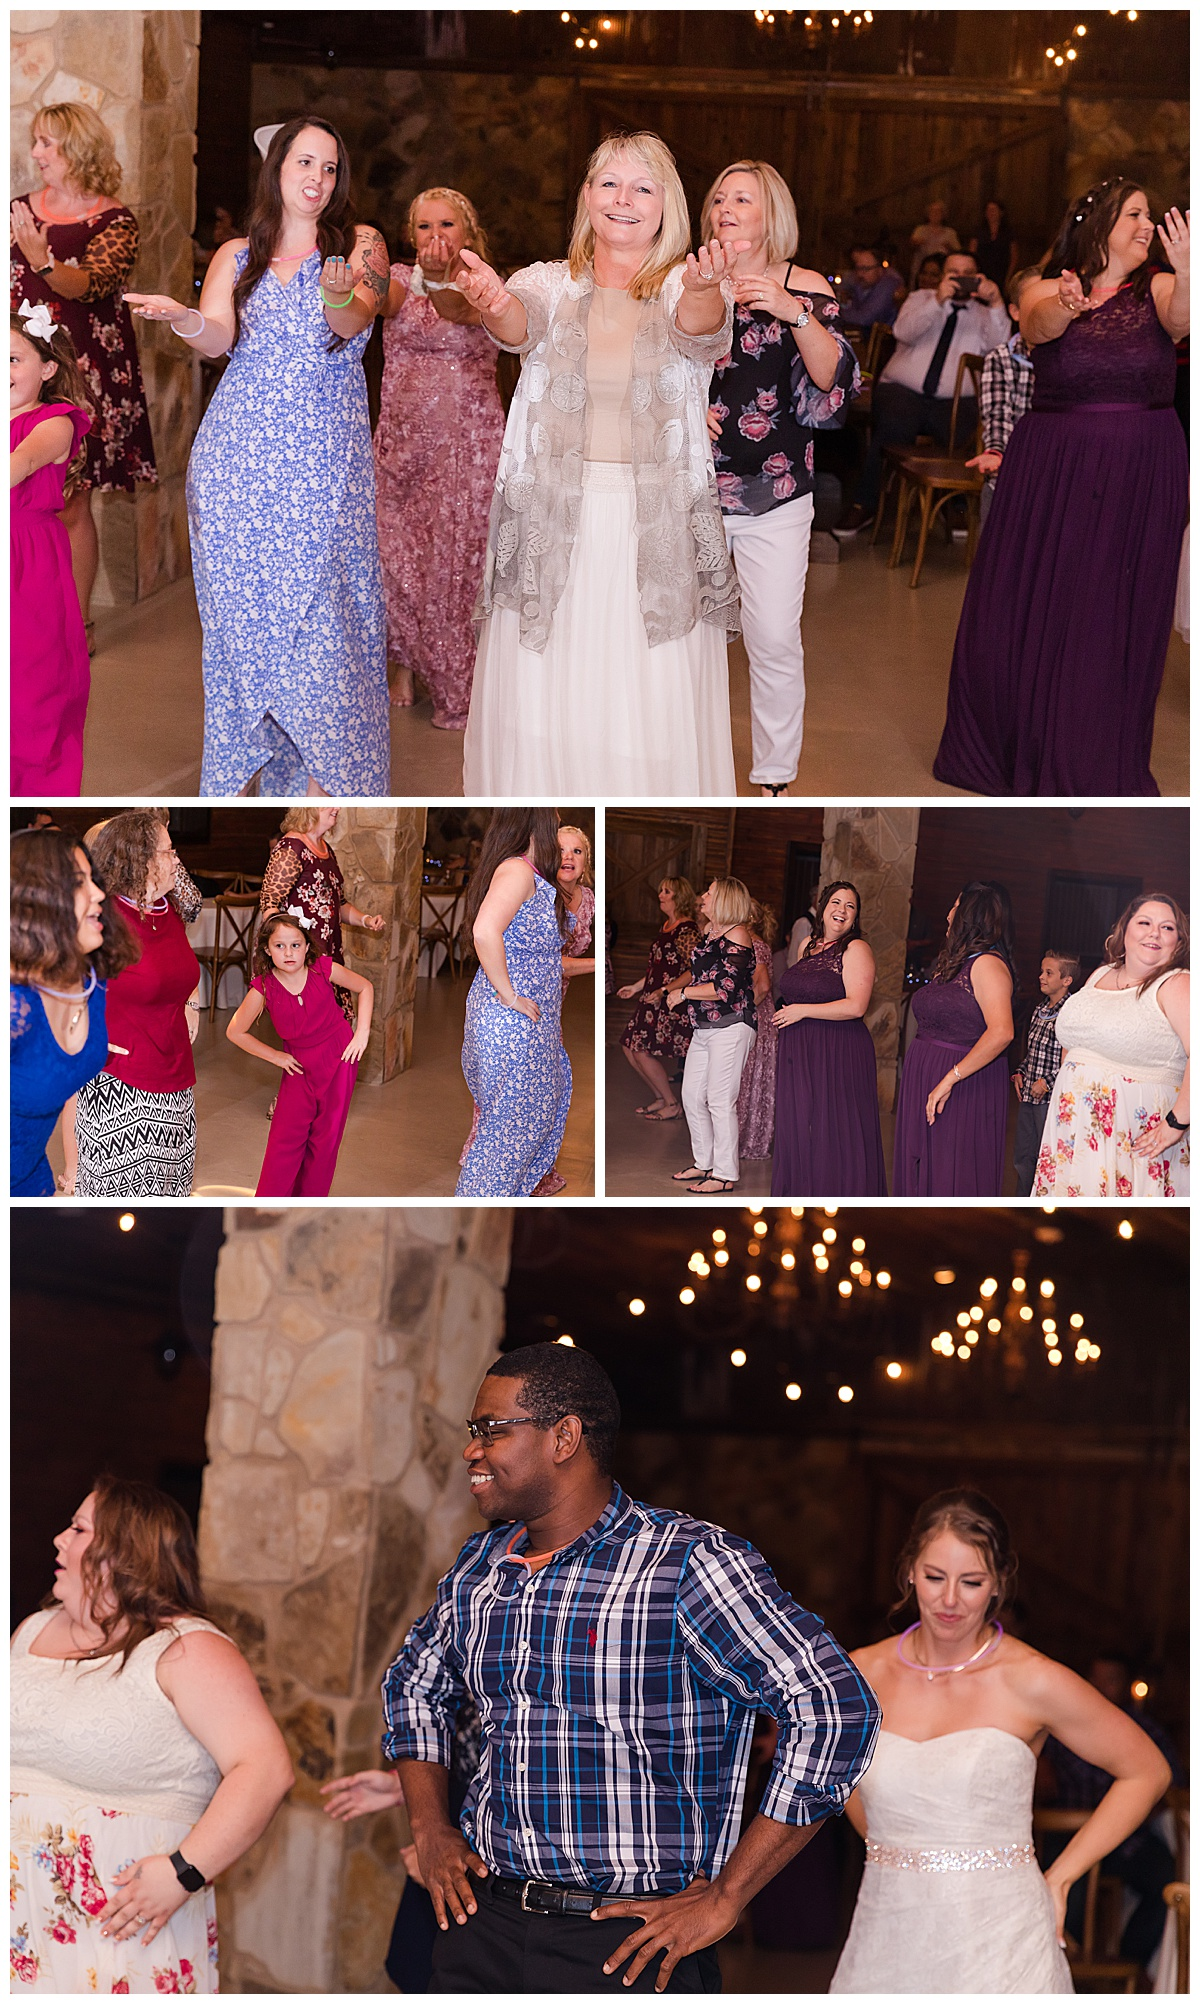 Texas-Magnolia-Bells-Rustic-Wedding-Carly-Barton-Photography_0032.jpg